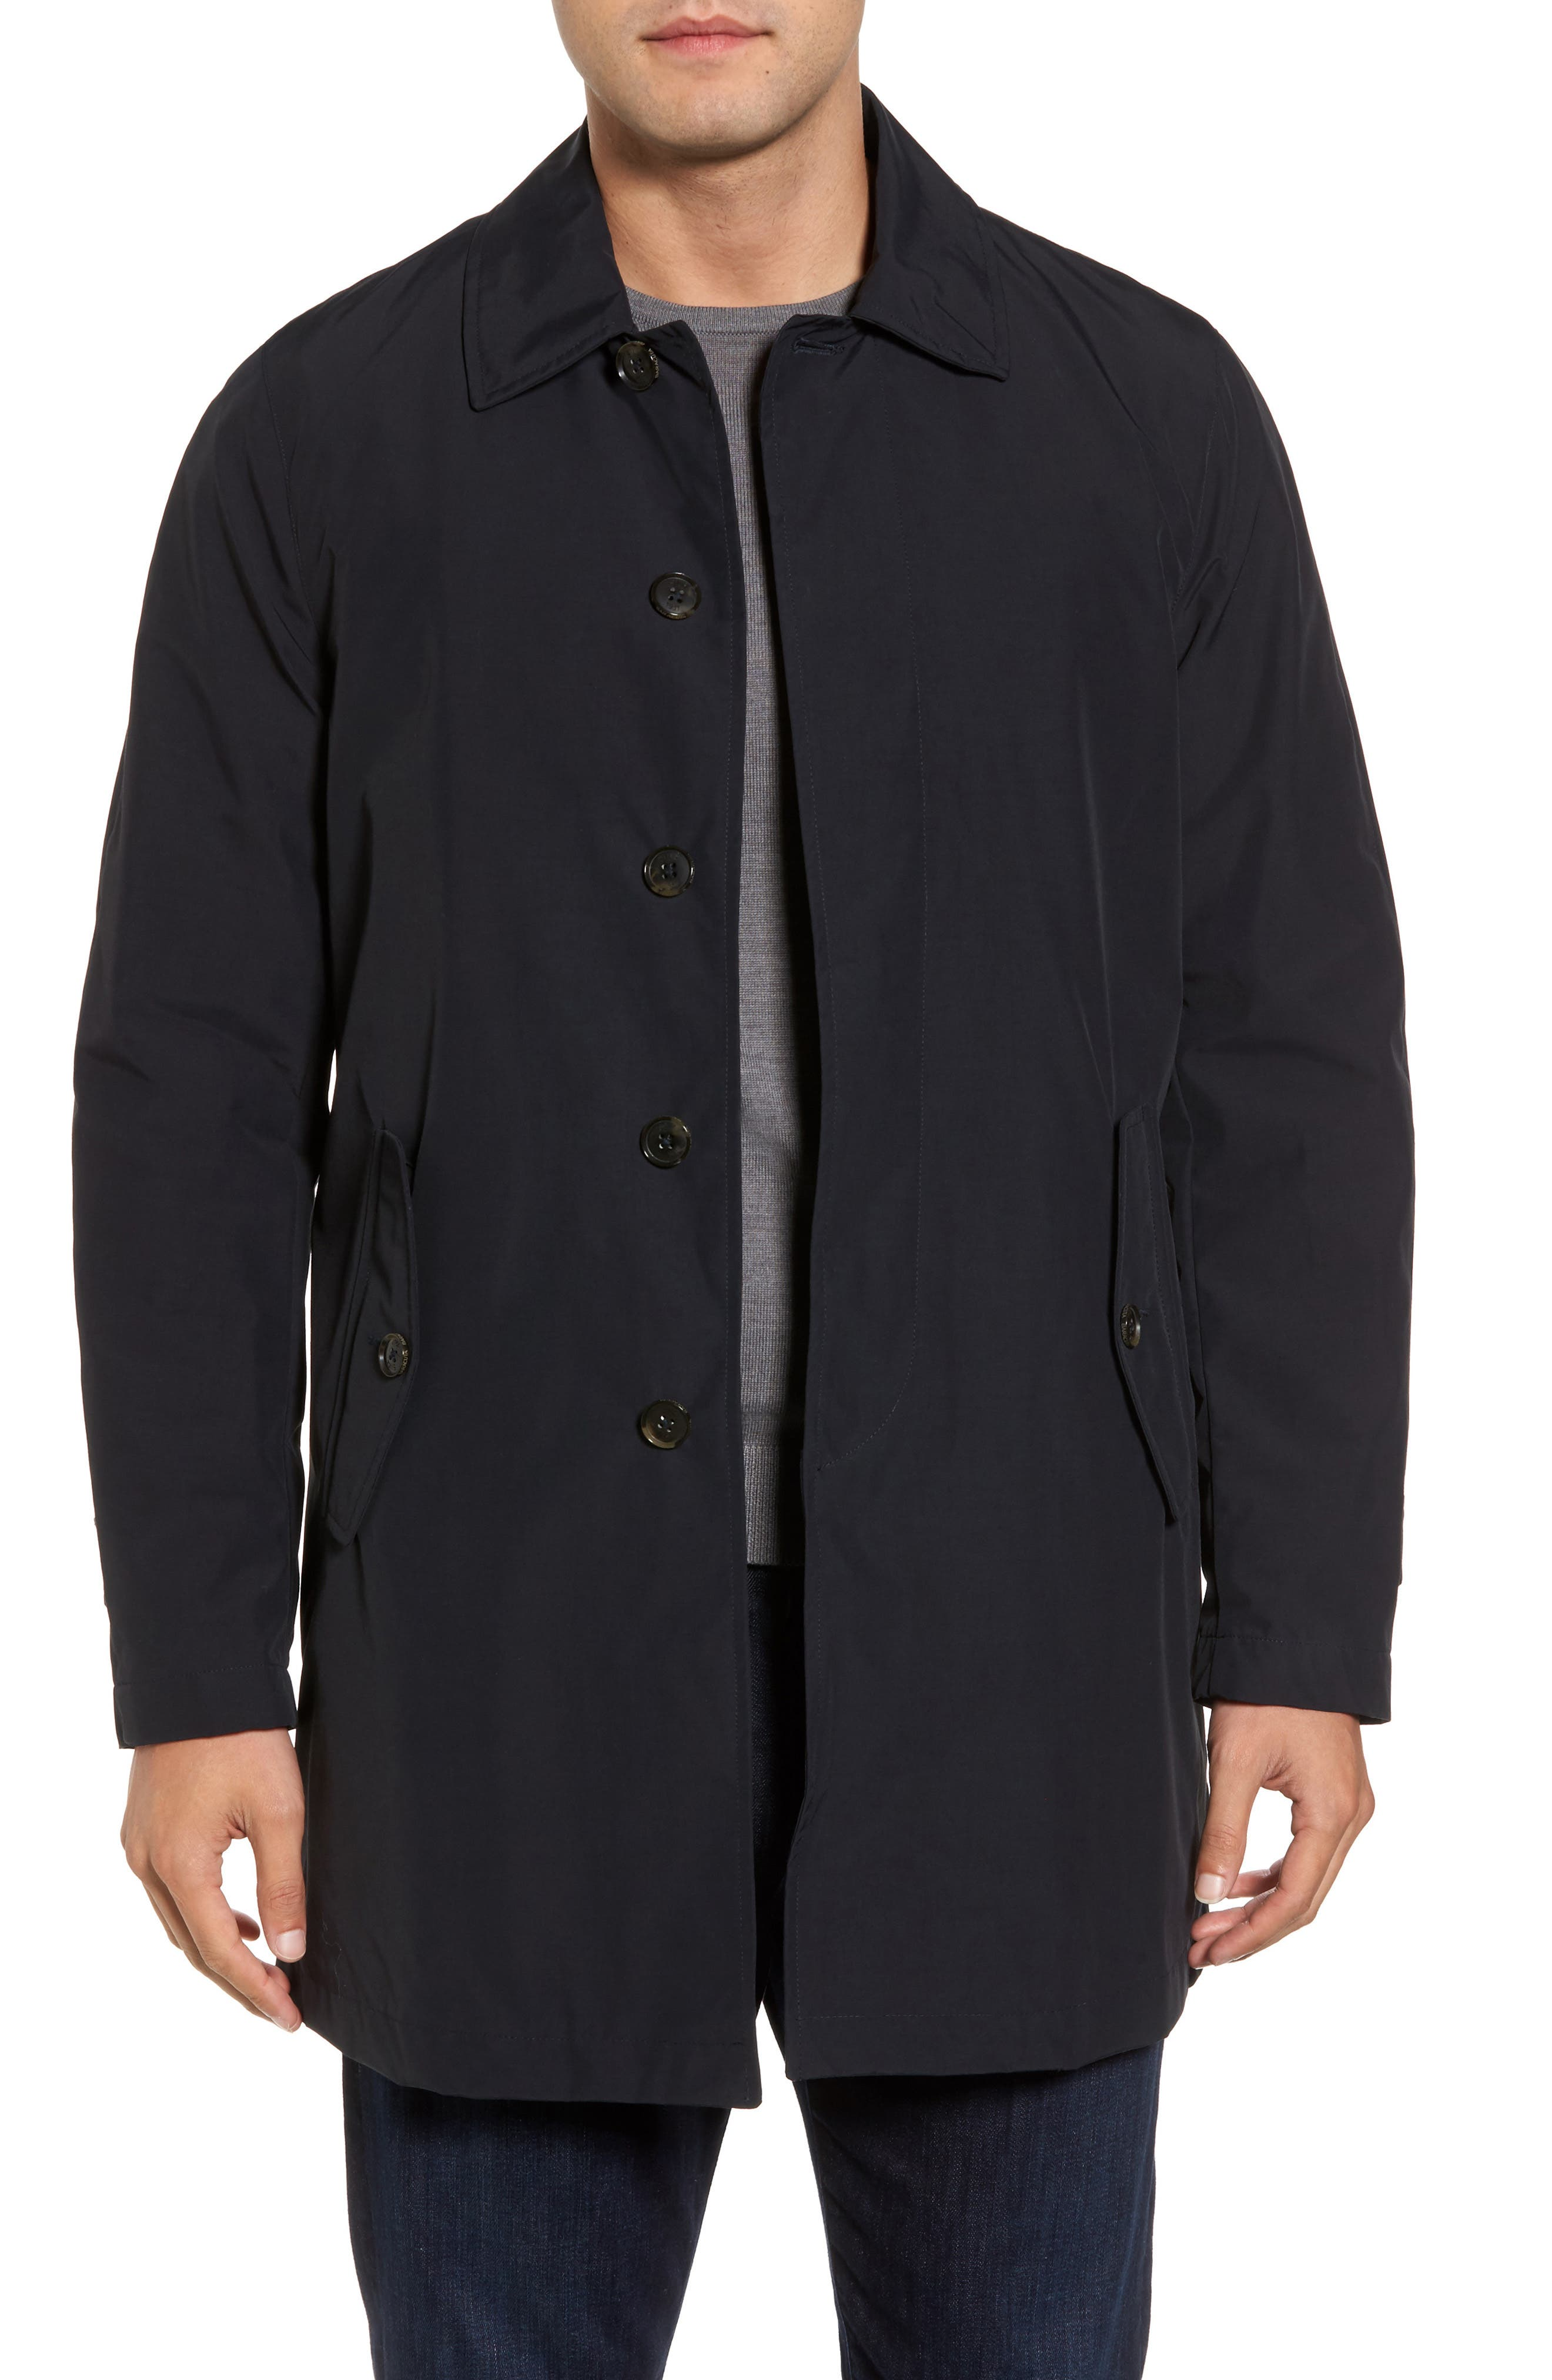 Baracuta Waterproof Coat with Removable Liner